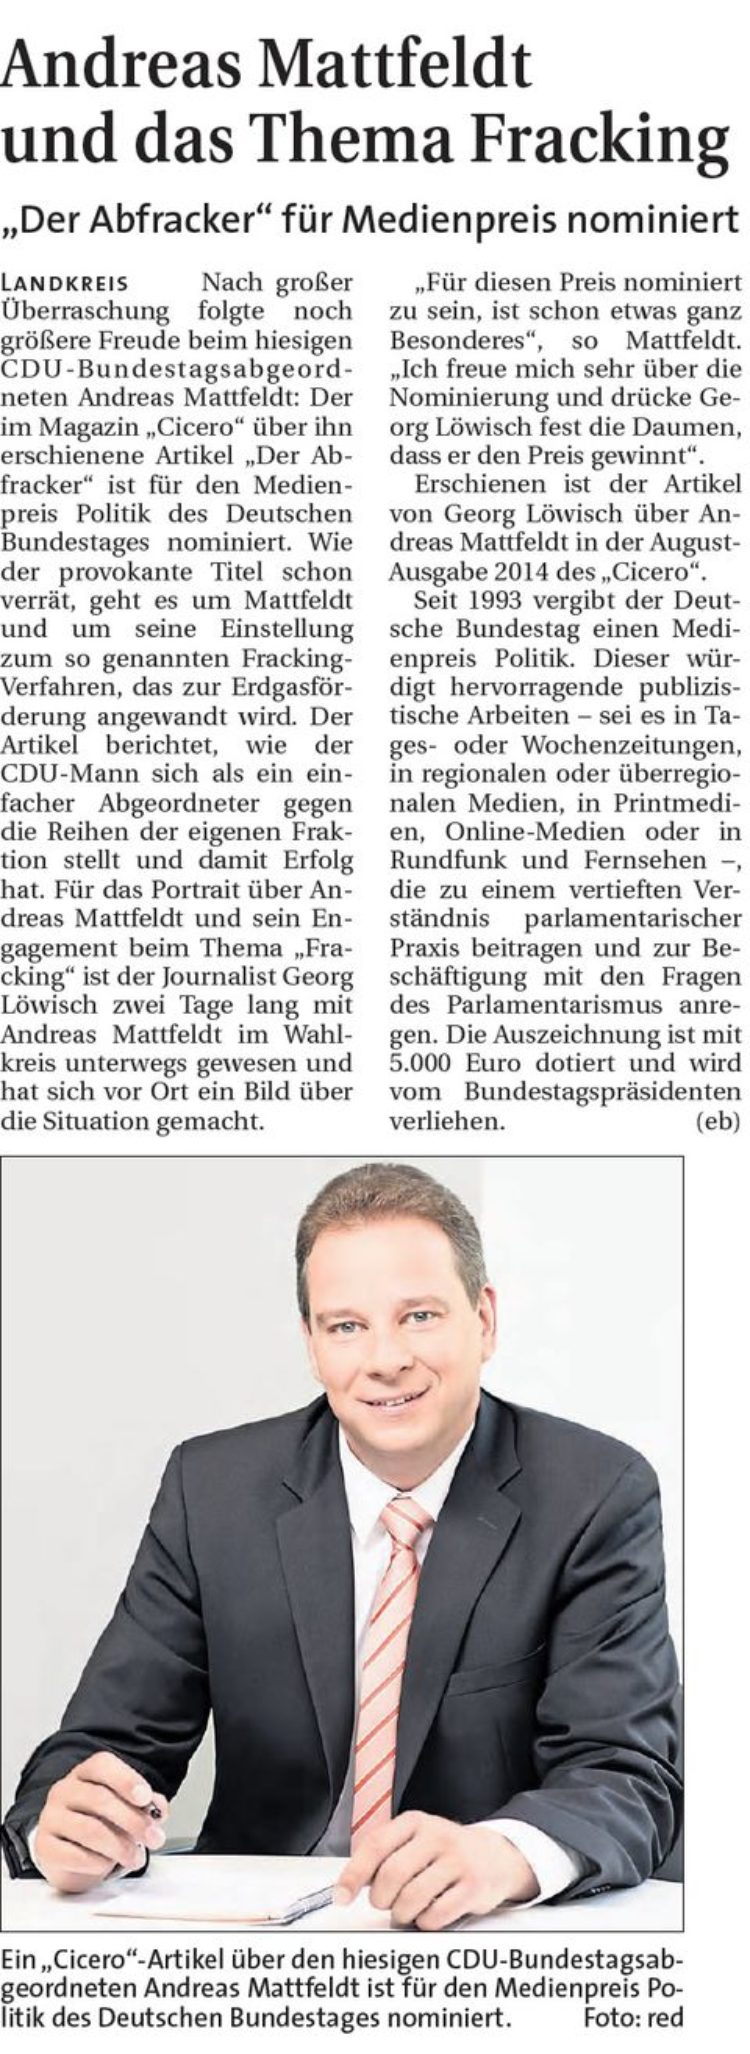 Hamme Report vom 25.02.2015